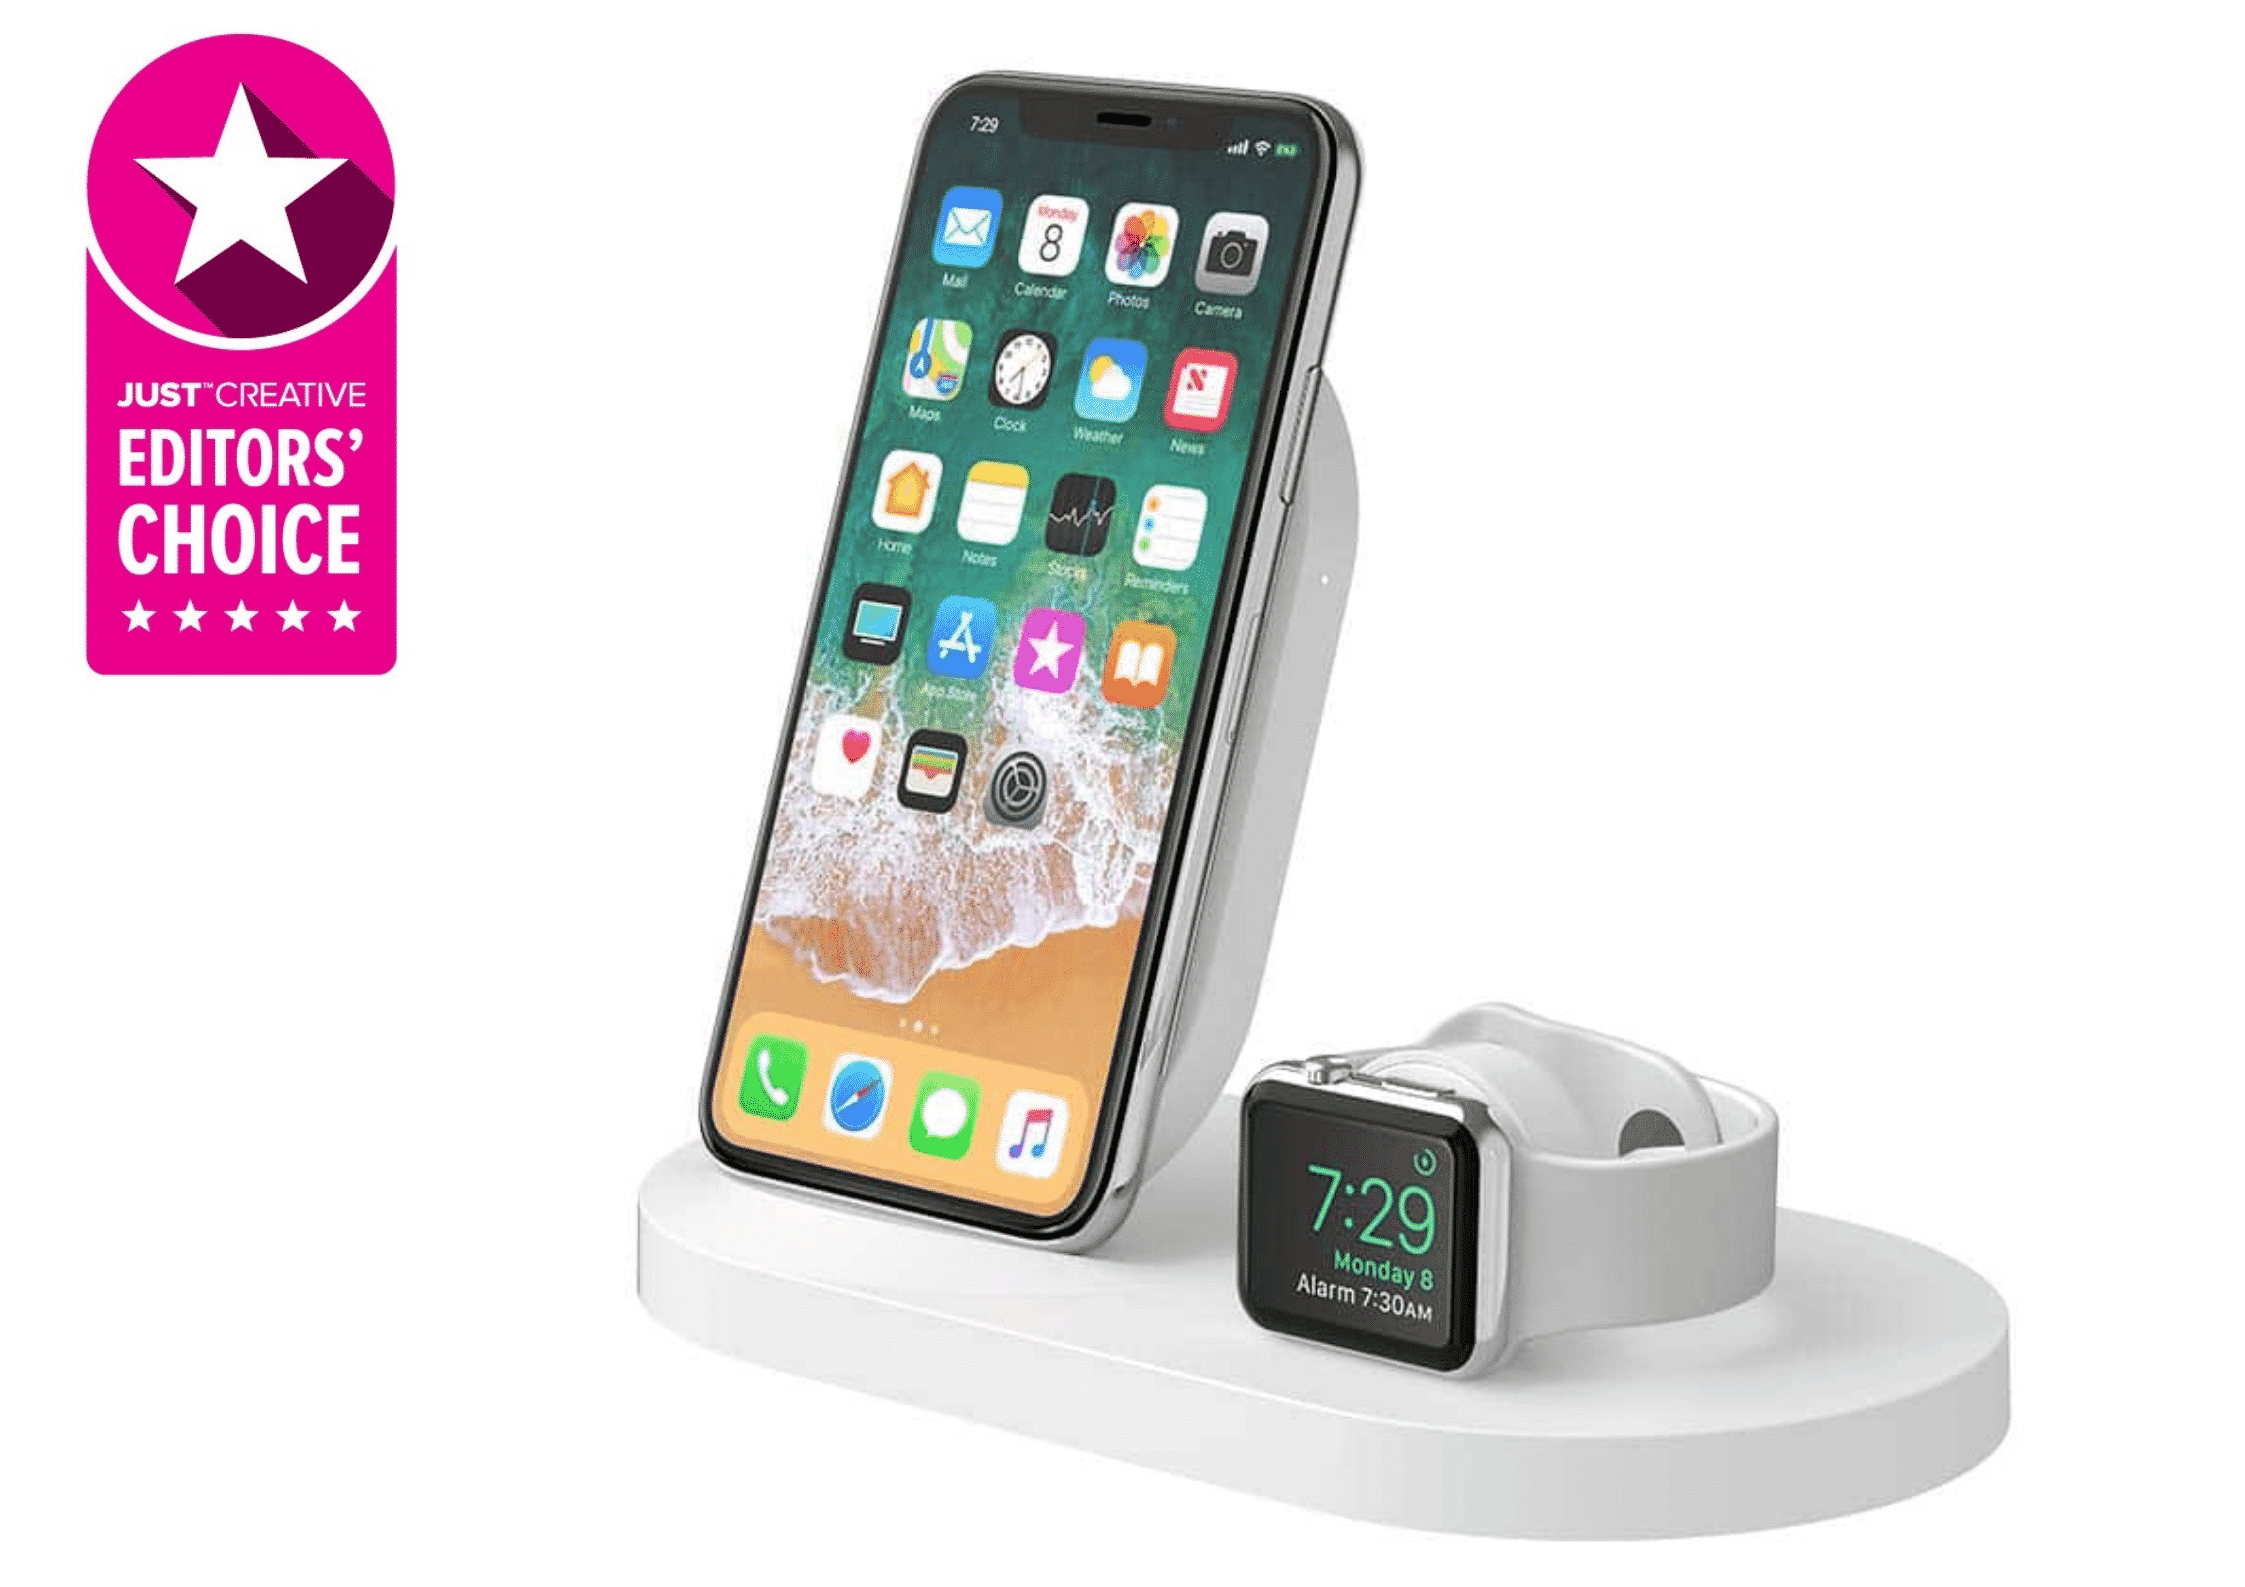 Belkin Wireless Charging Dock- Best dock for iPhone and Apple watch owners